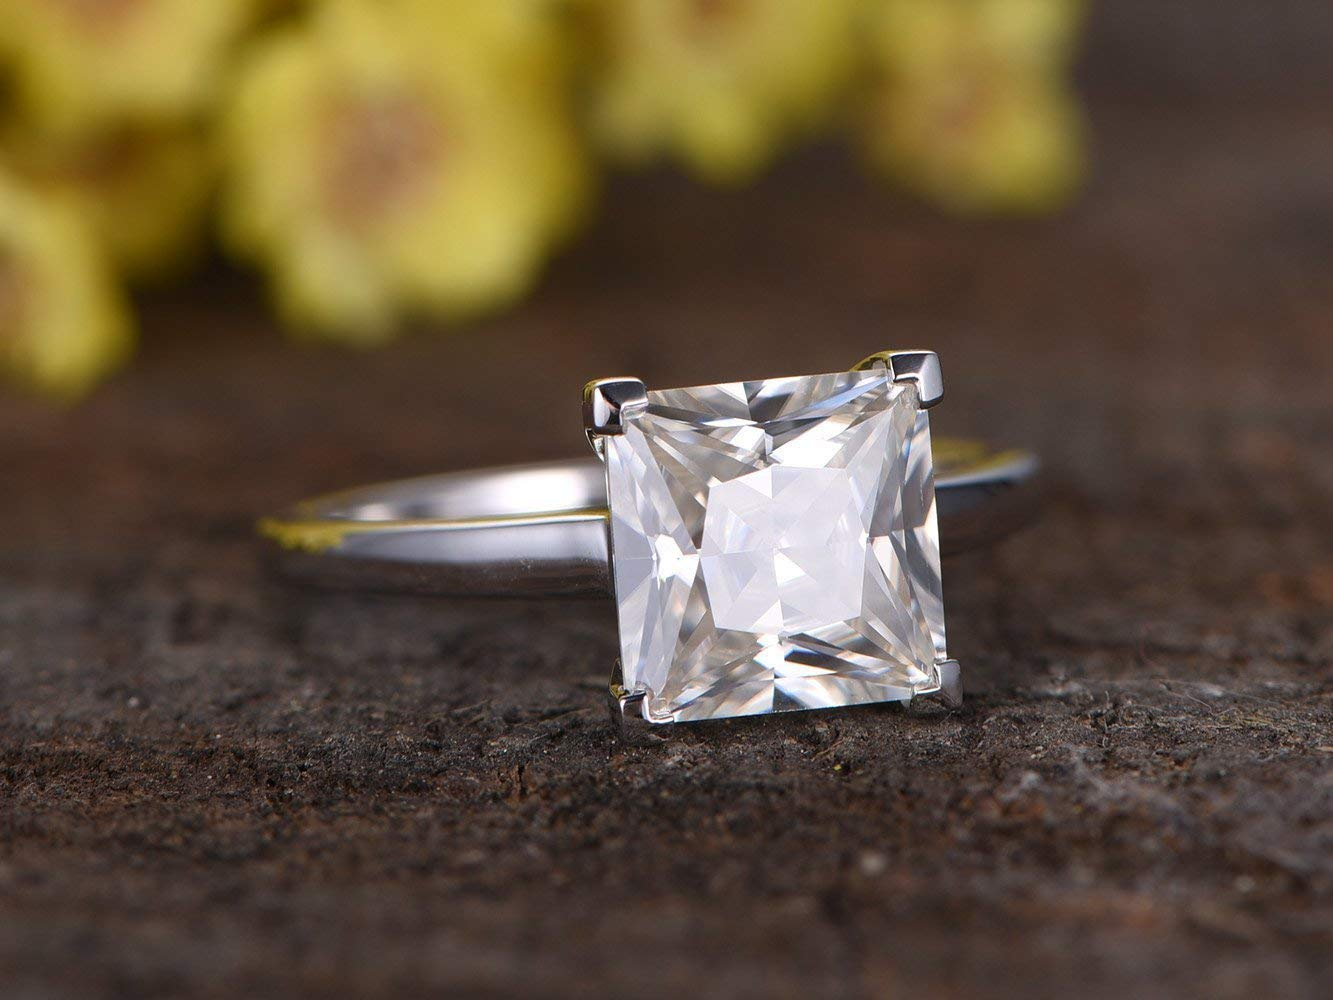 Square Wedding Ring Promise Ring For Her 1.5 Carat Princess Cut Engagement Ring 14K Solid White Gold Ring Proposal Ring Anniversary Ring